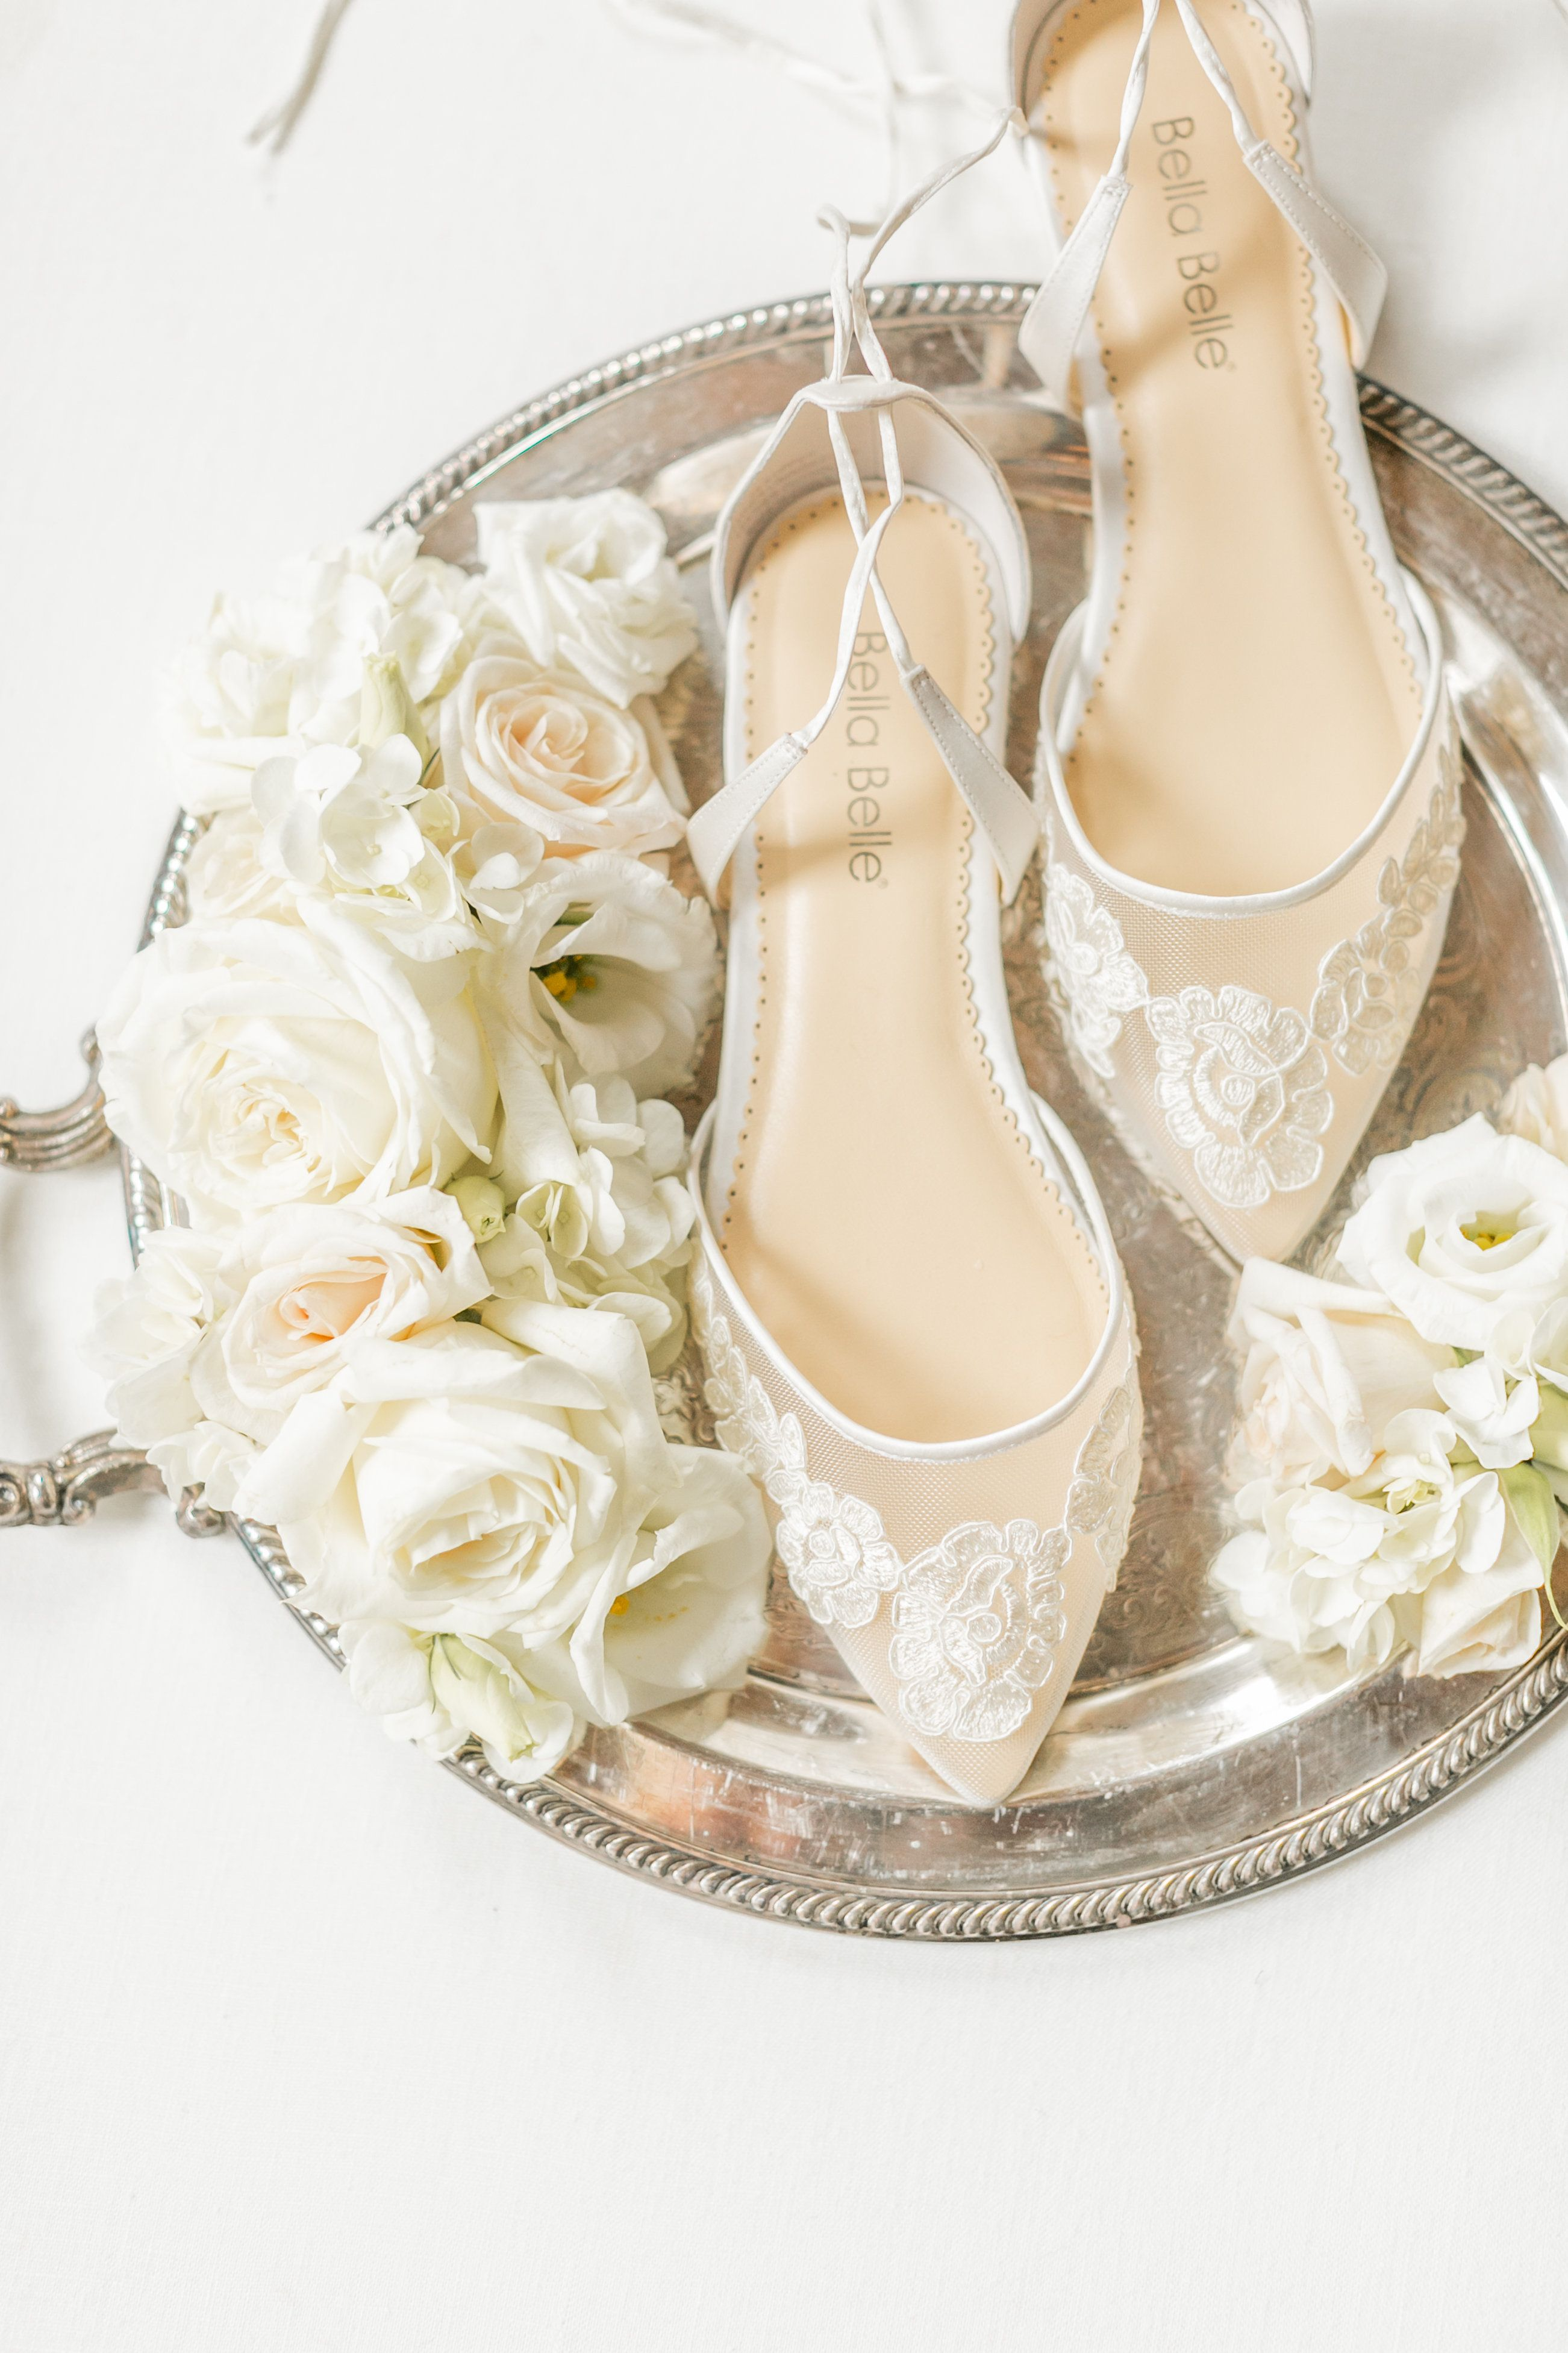 0aafe2c6040aa9 Bella Belle Shoes Stunning Simple Lace and Comfortable Wedding Flats for  Bride  Alicia ivory floral